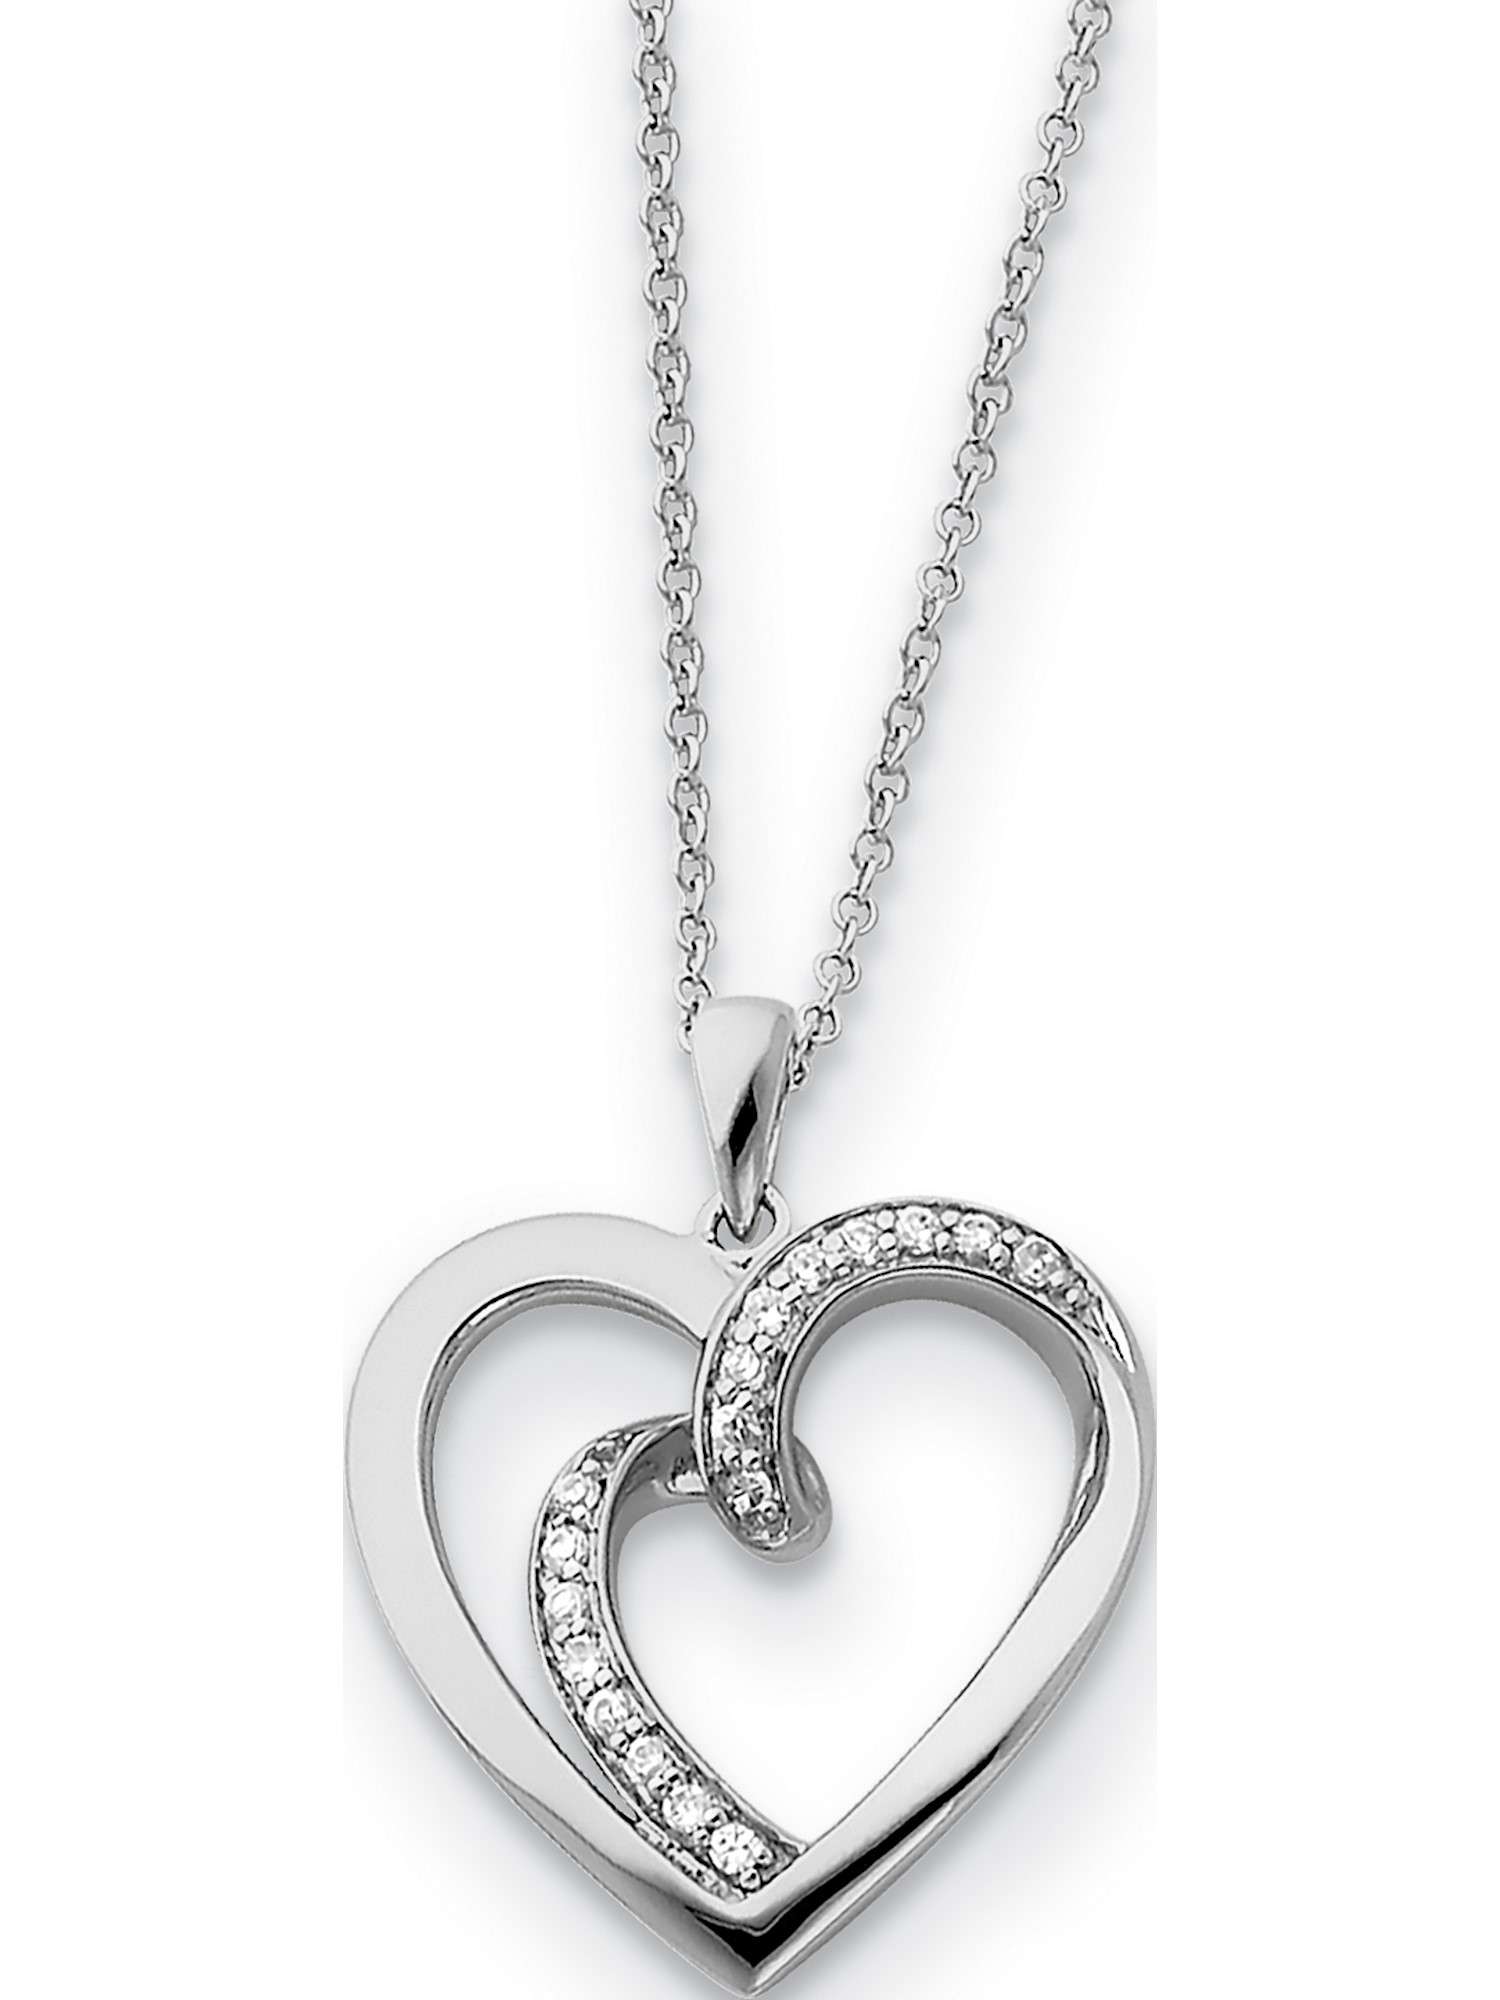 Details about  /Sterling Silver Cubic Zirconia Heart Pendant